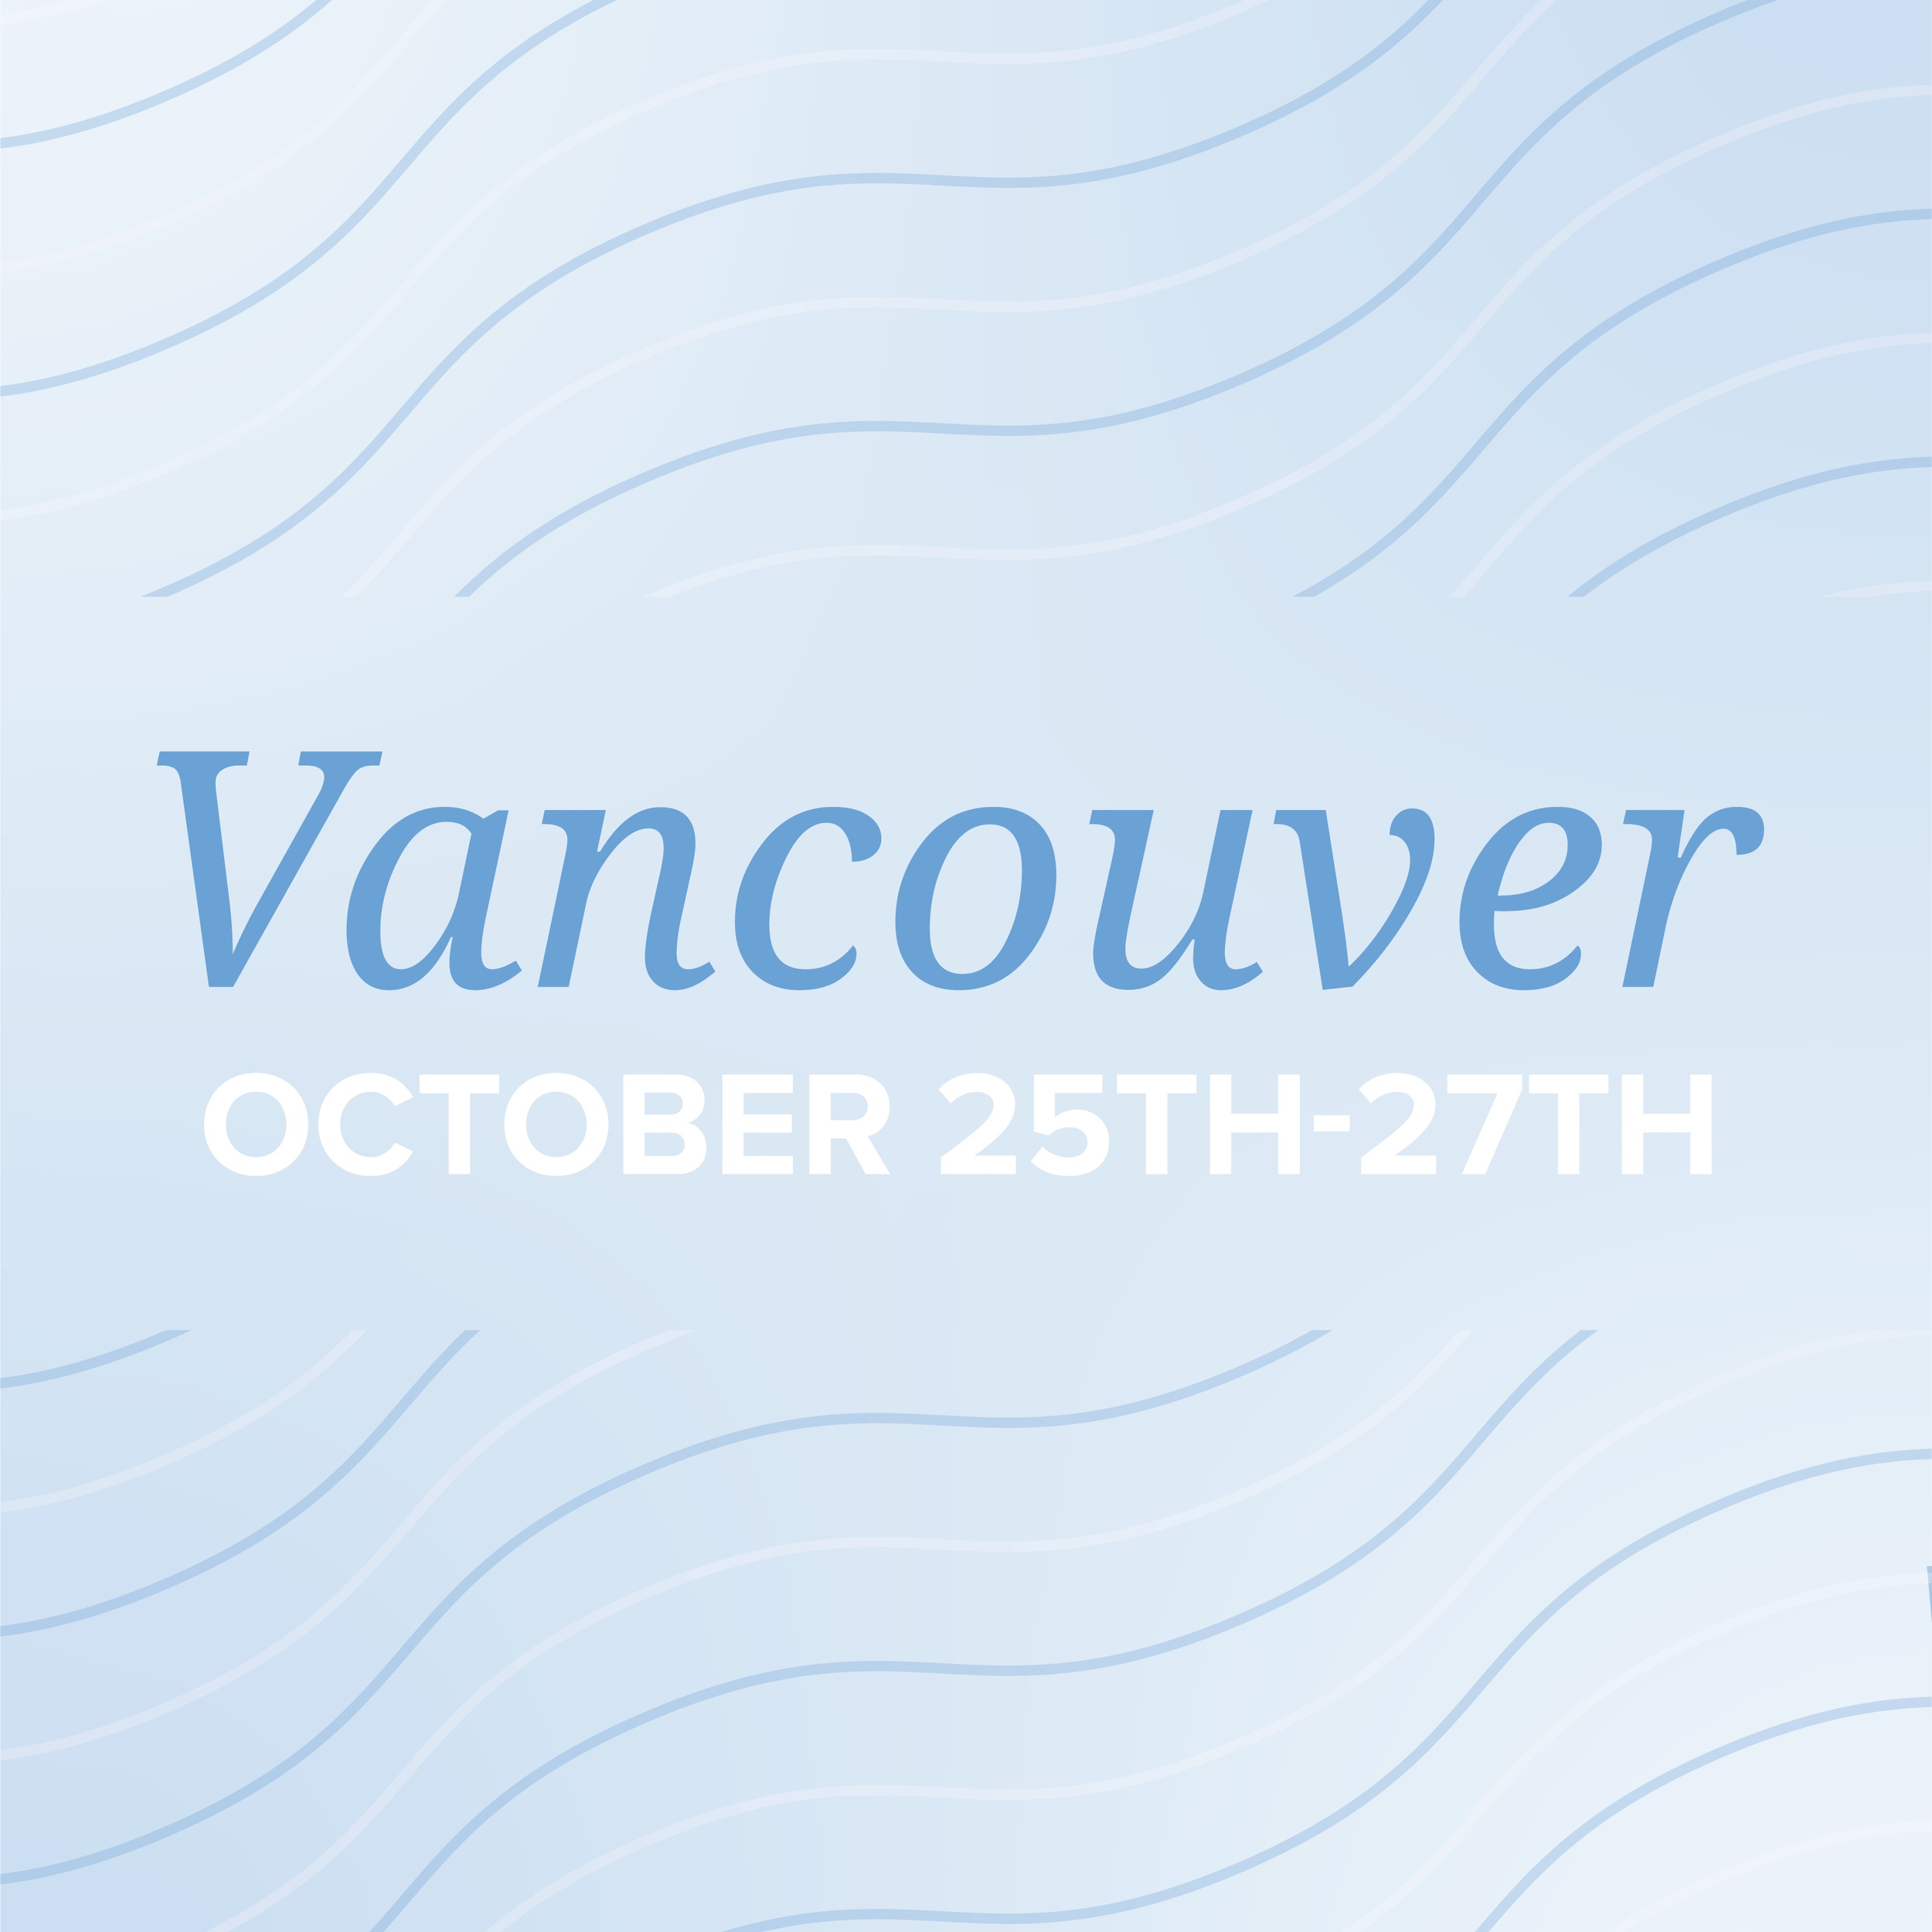 RISE_Conference_Vancouver.jpg